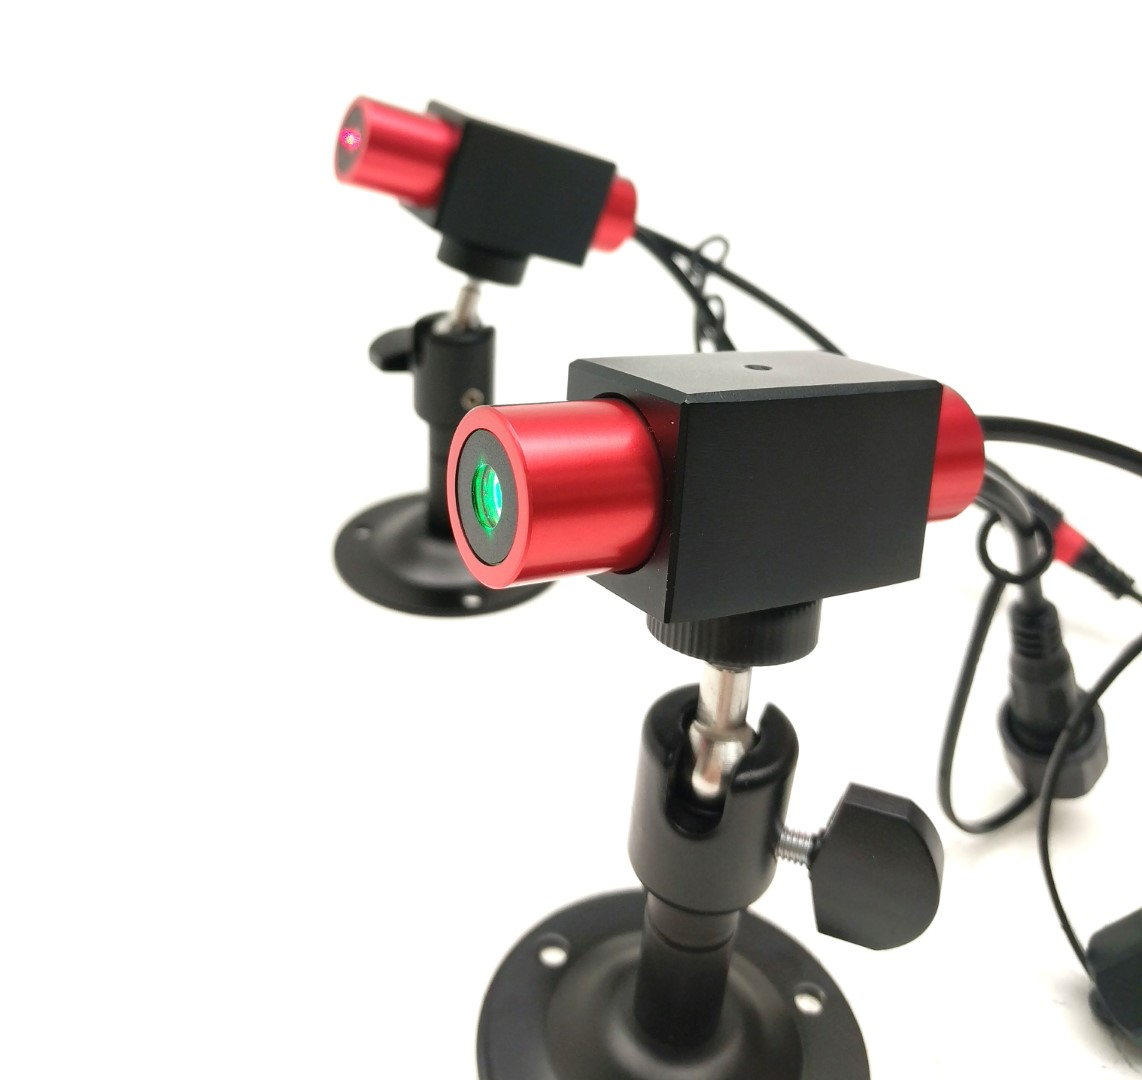 5 mW 635 nm Red Premium Structured Line of 11 dots Laser, 17° fan angle, adjustable focus, TTL+, Sealed IP67